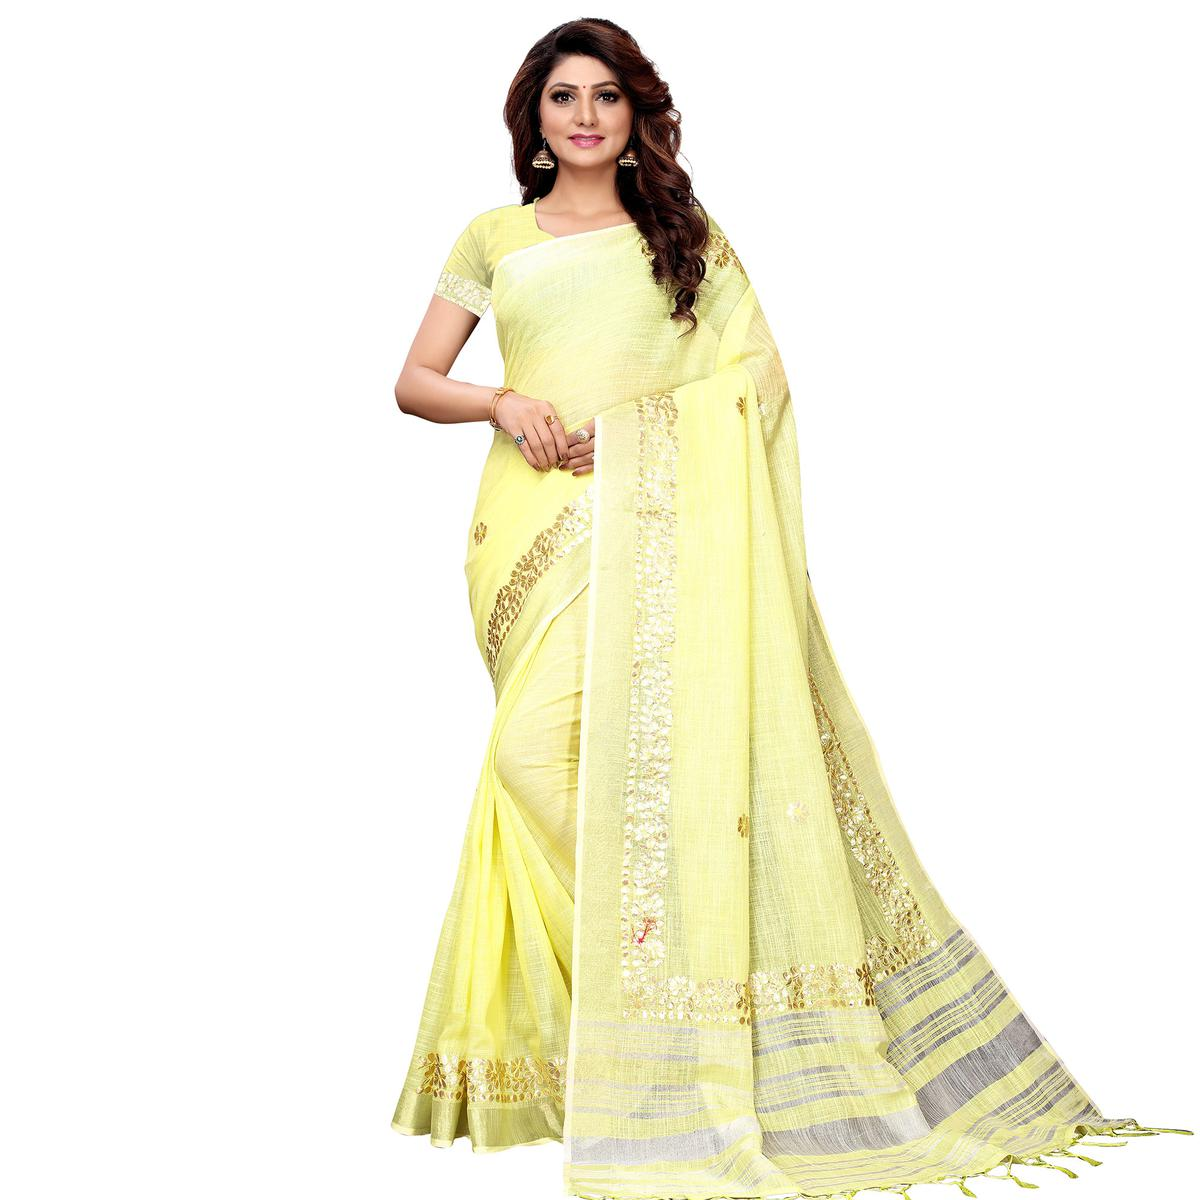 Radiant Lemon Yellow Colored Festive Wear Linen Saree